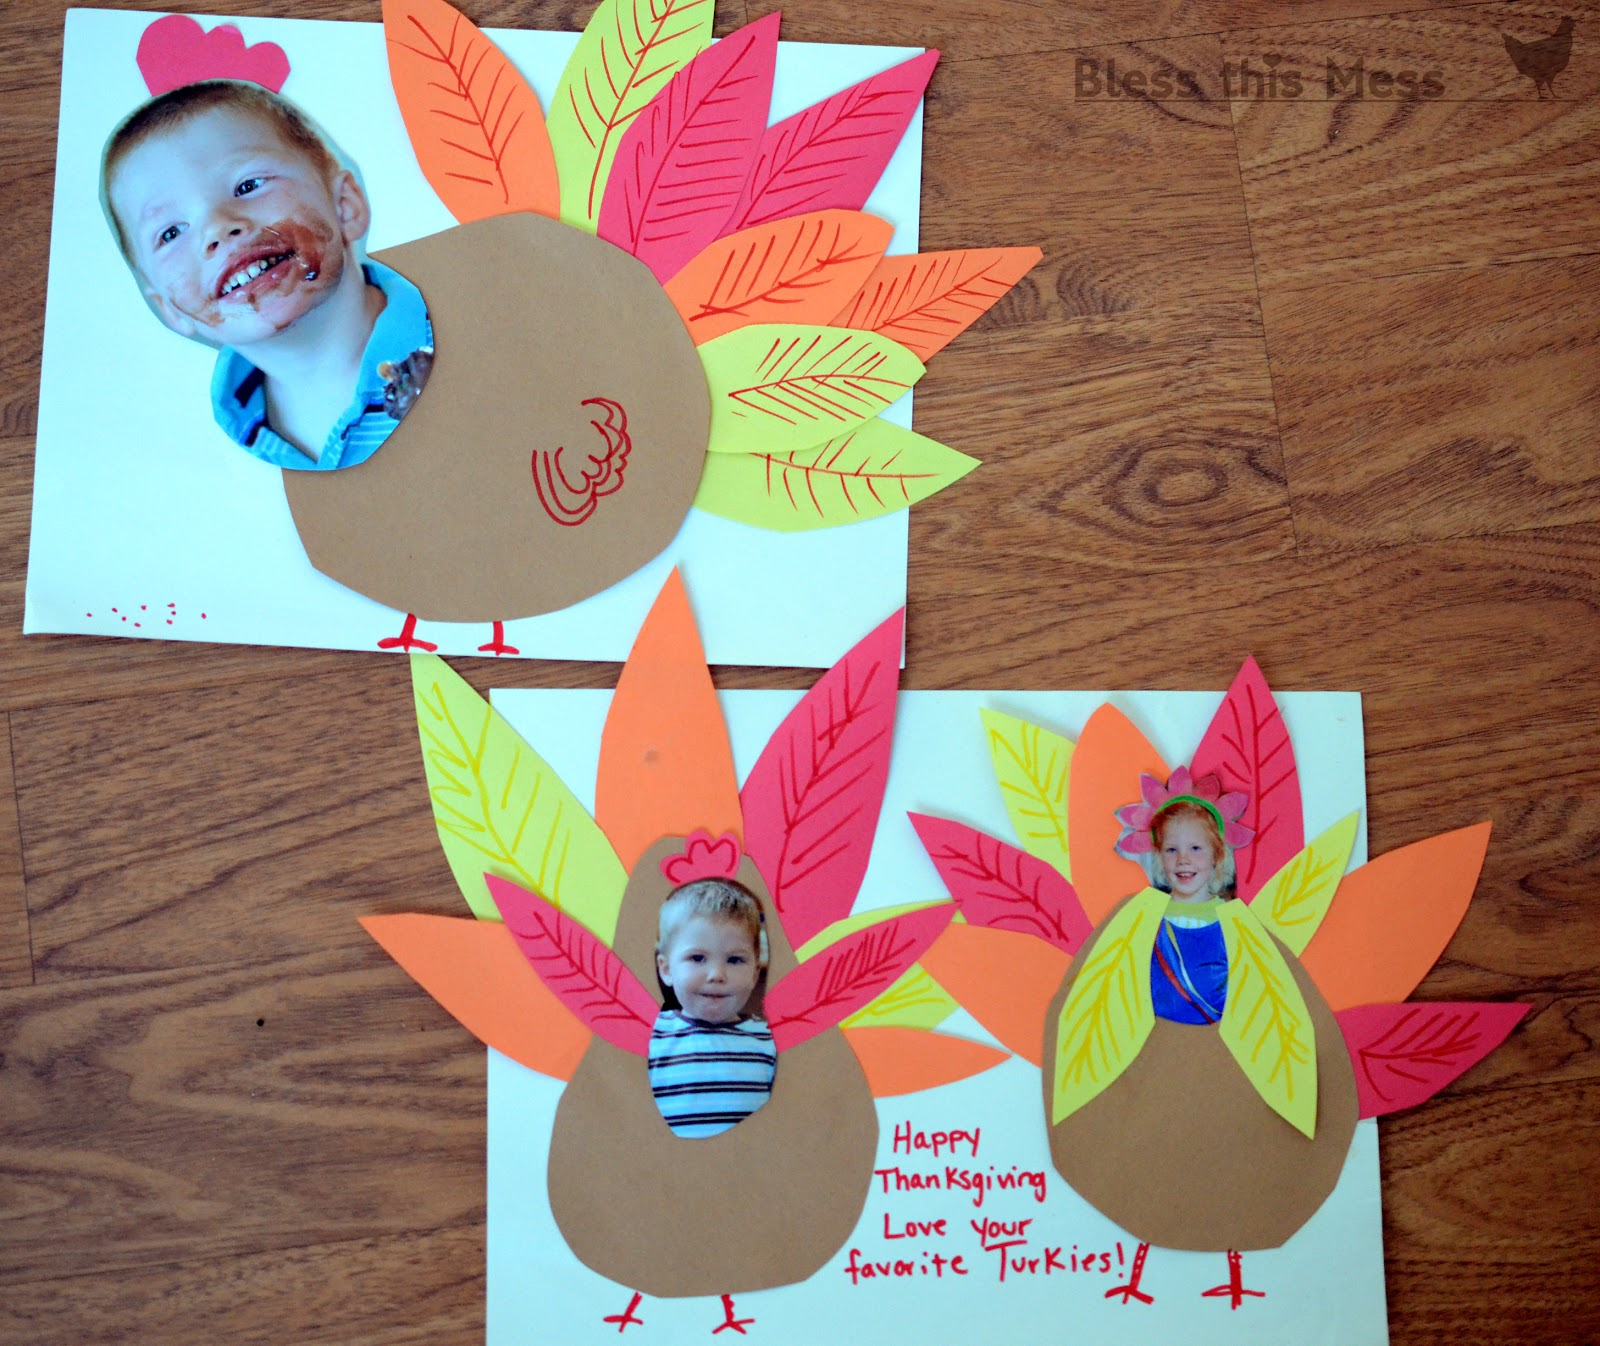 thanksgiving craft ideas for preschoolers 5 easy turkey crafts for bless this mess 932